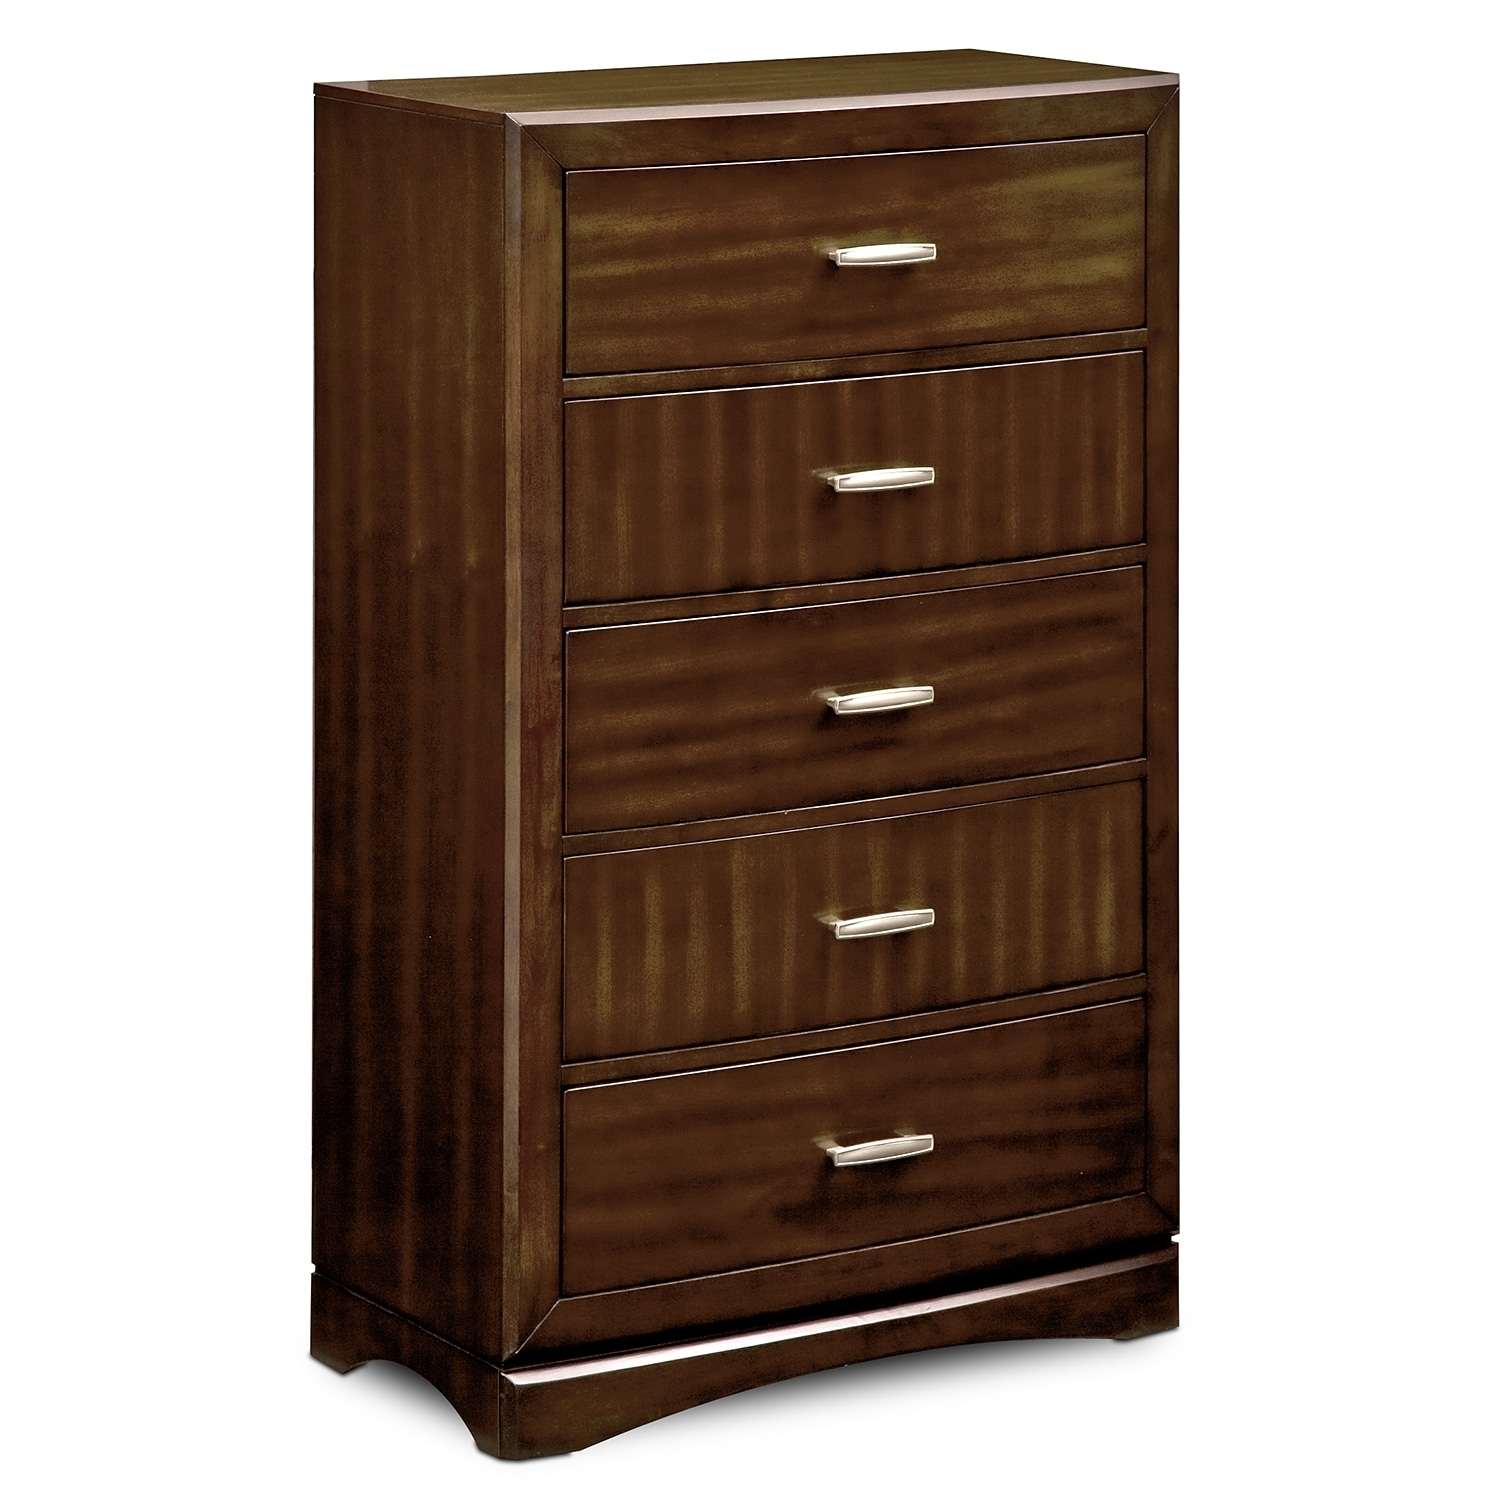 Bedroom Furniture - Toronto Chest - Pecan